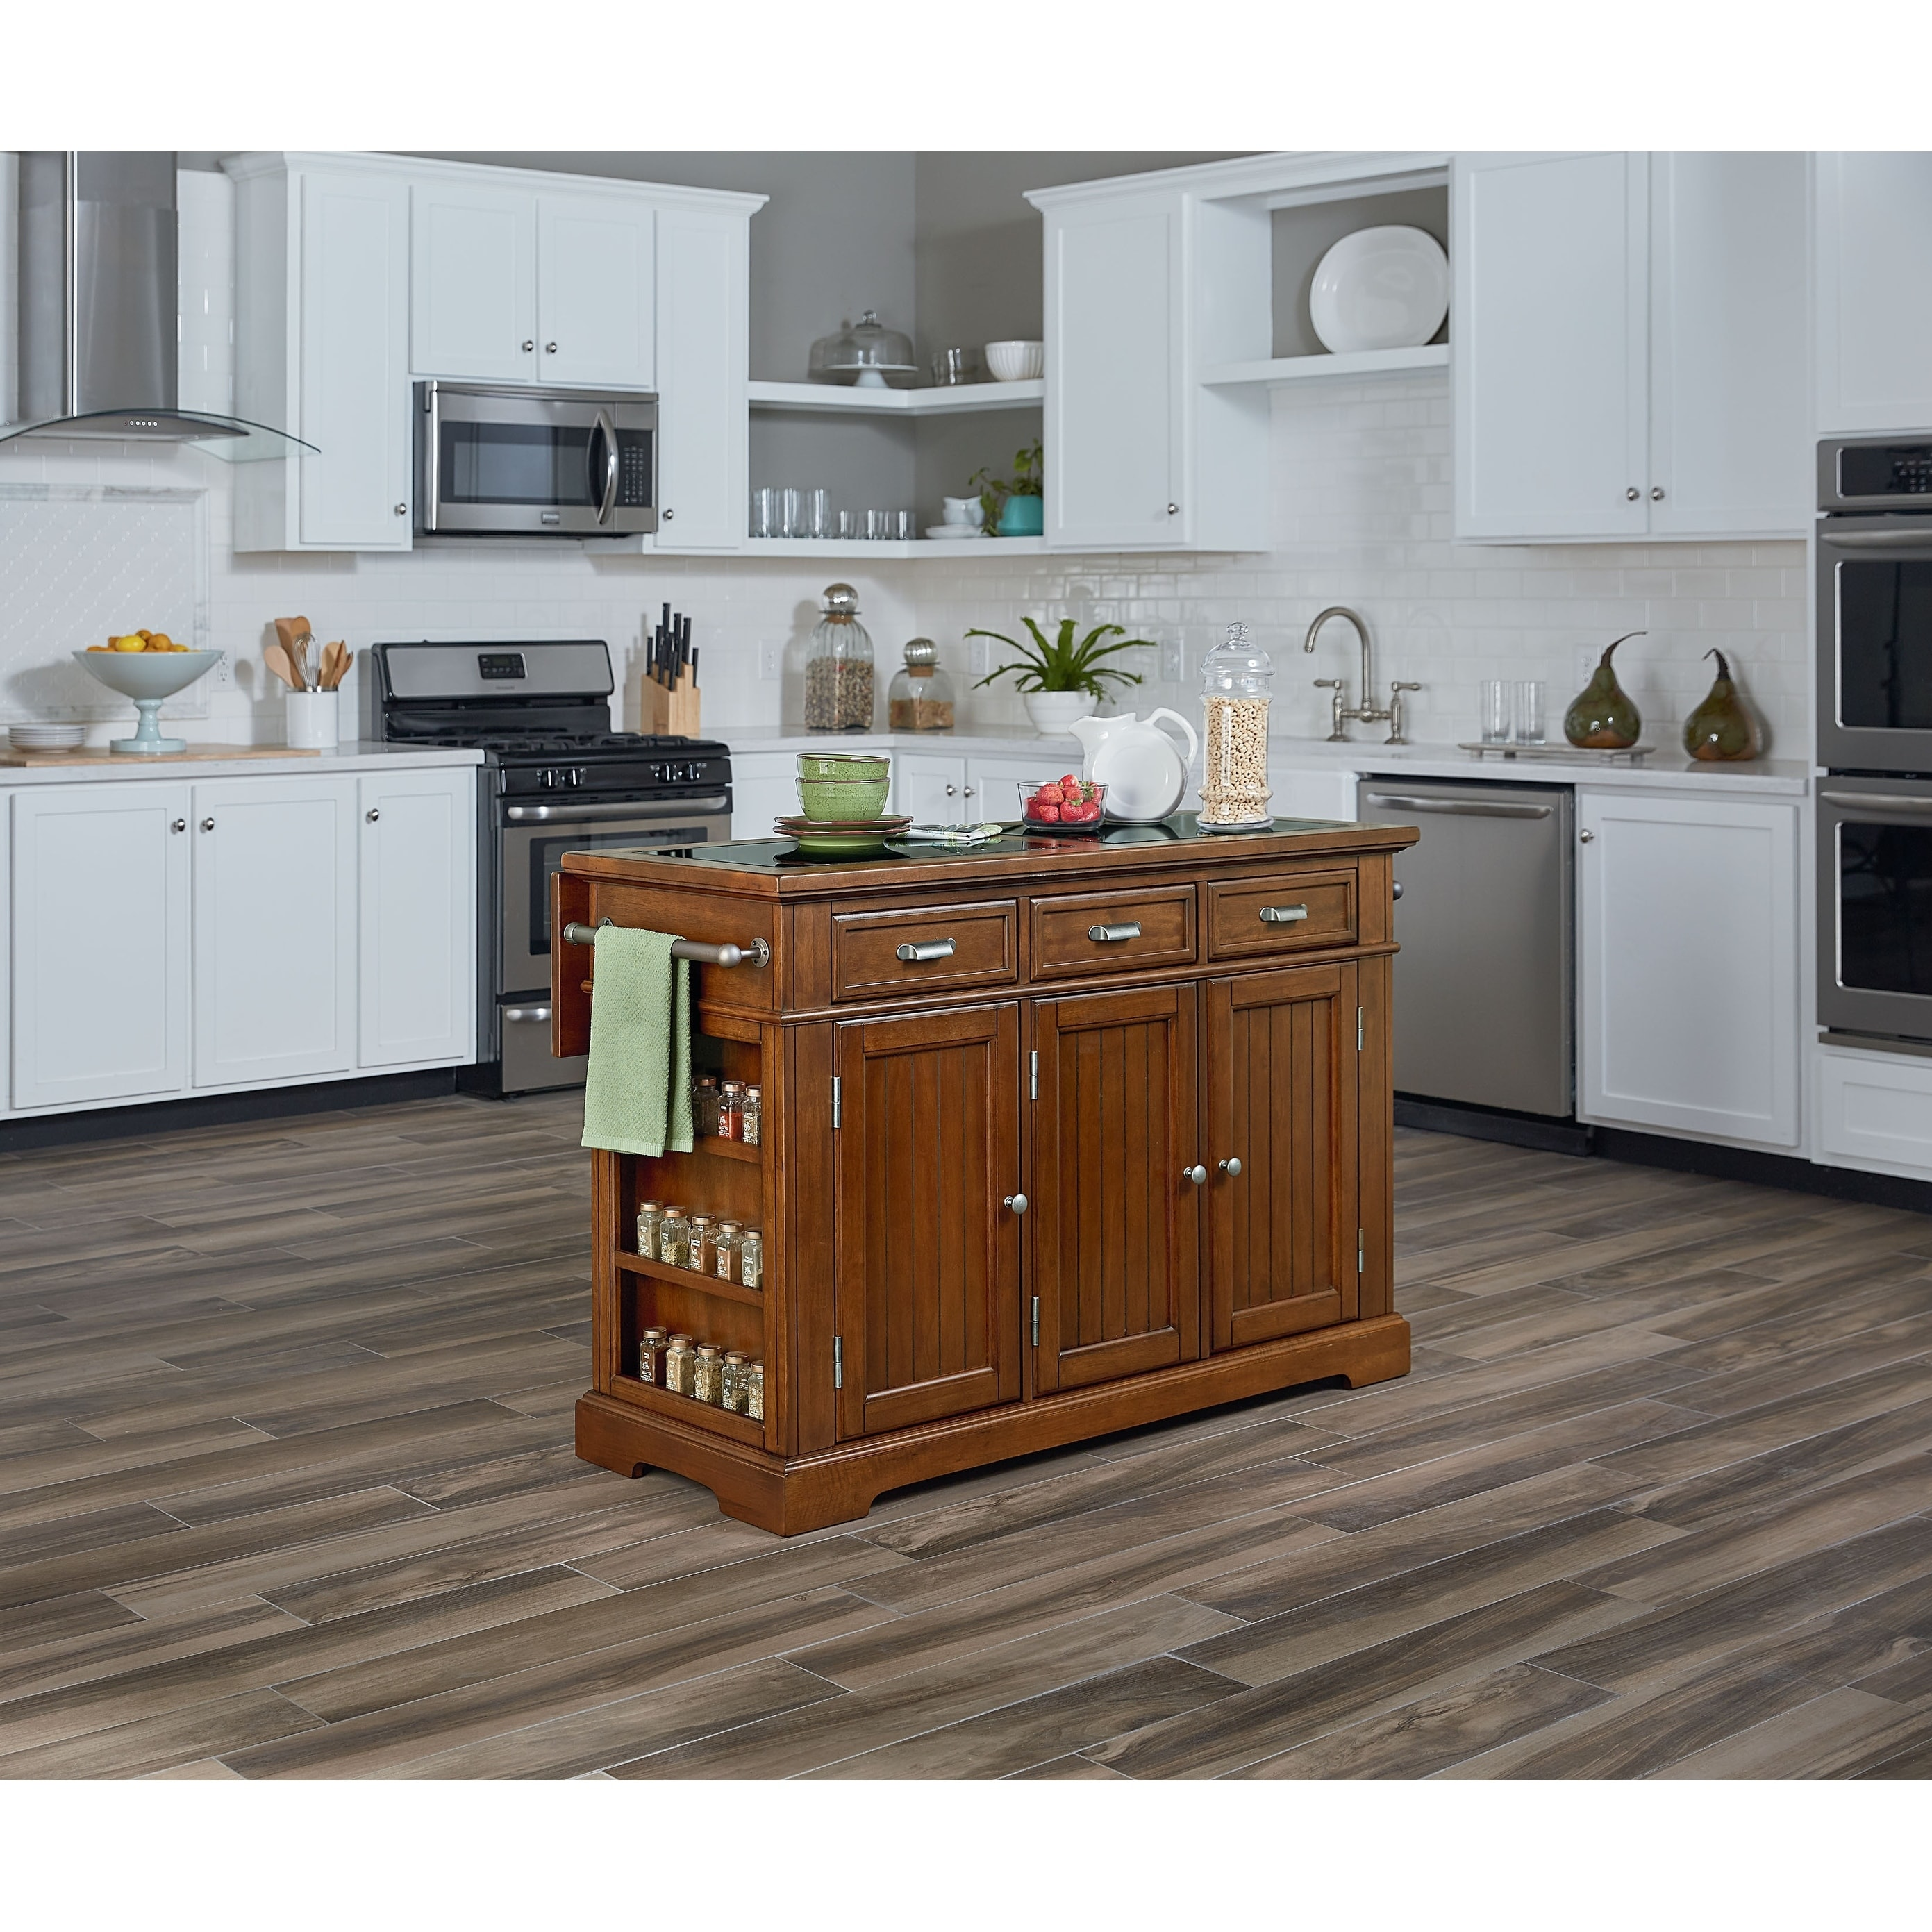 oak kitchen islands stainless steel trash can shop osp home furnishings farmhouse basics vintage island with inlaid granite top